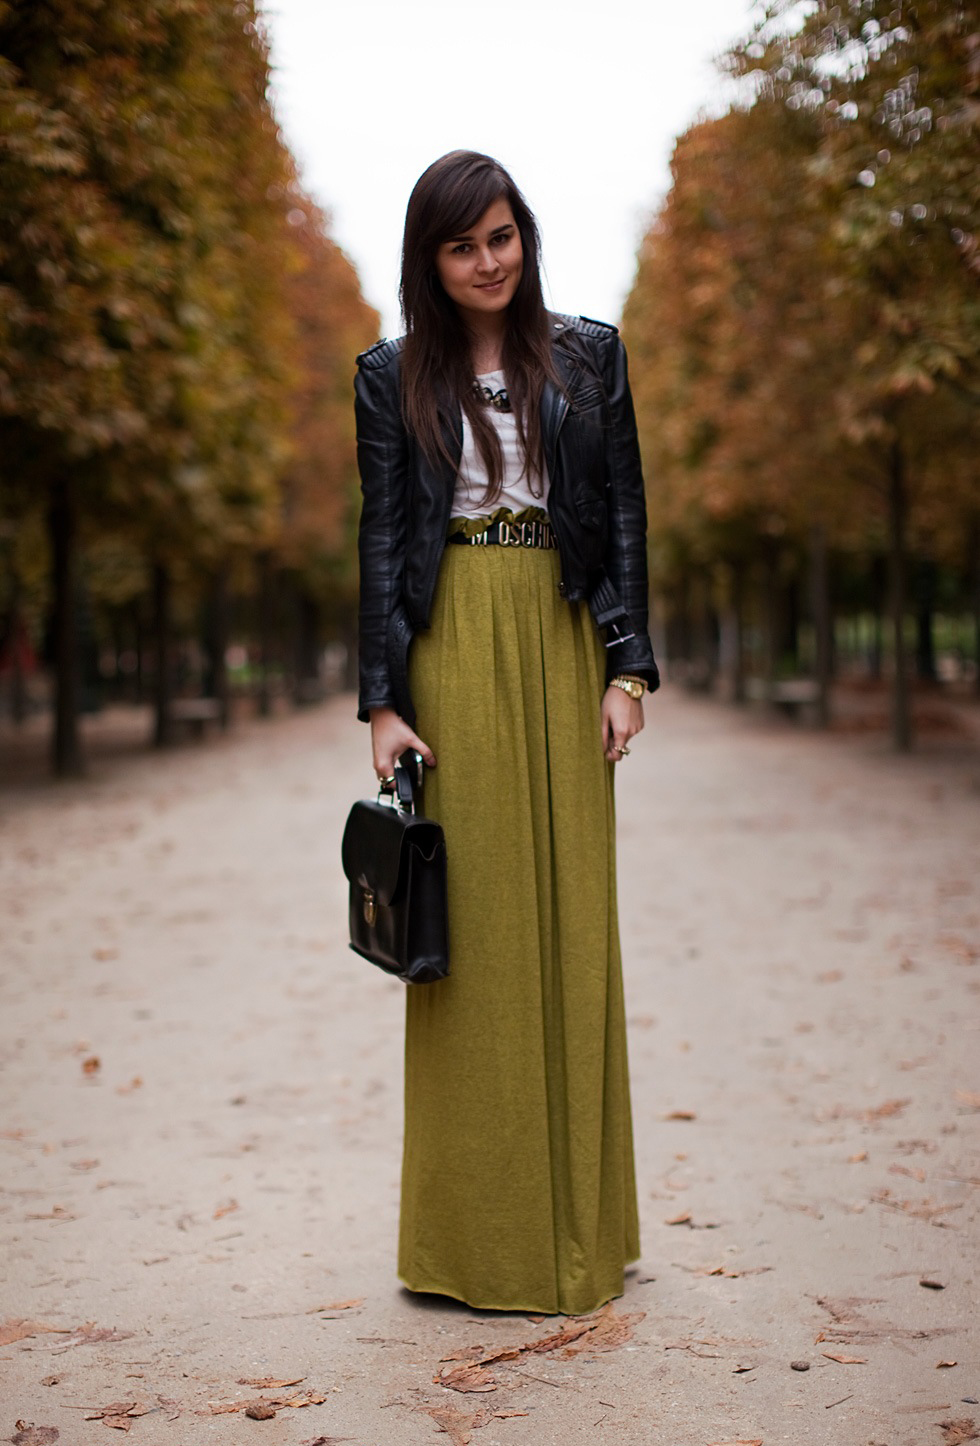 17 Best Images About Its Fashion Metro On Pinterest: Fashion & Style: Long Skirt